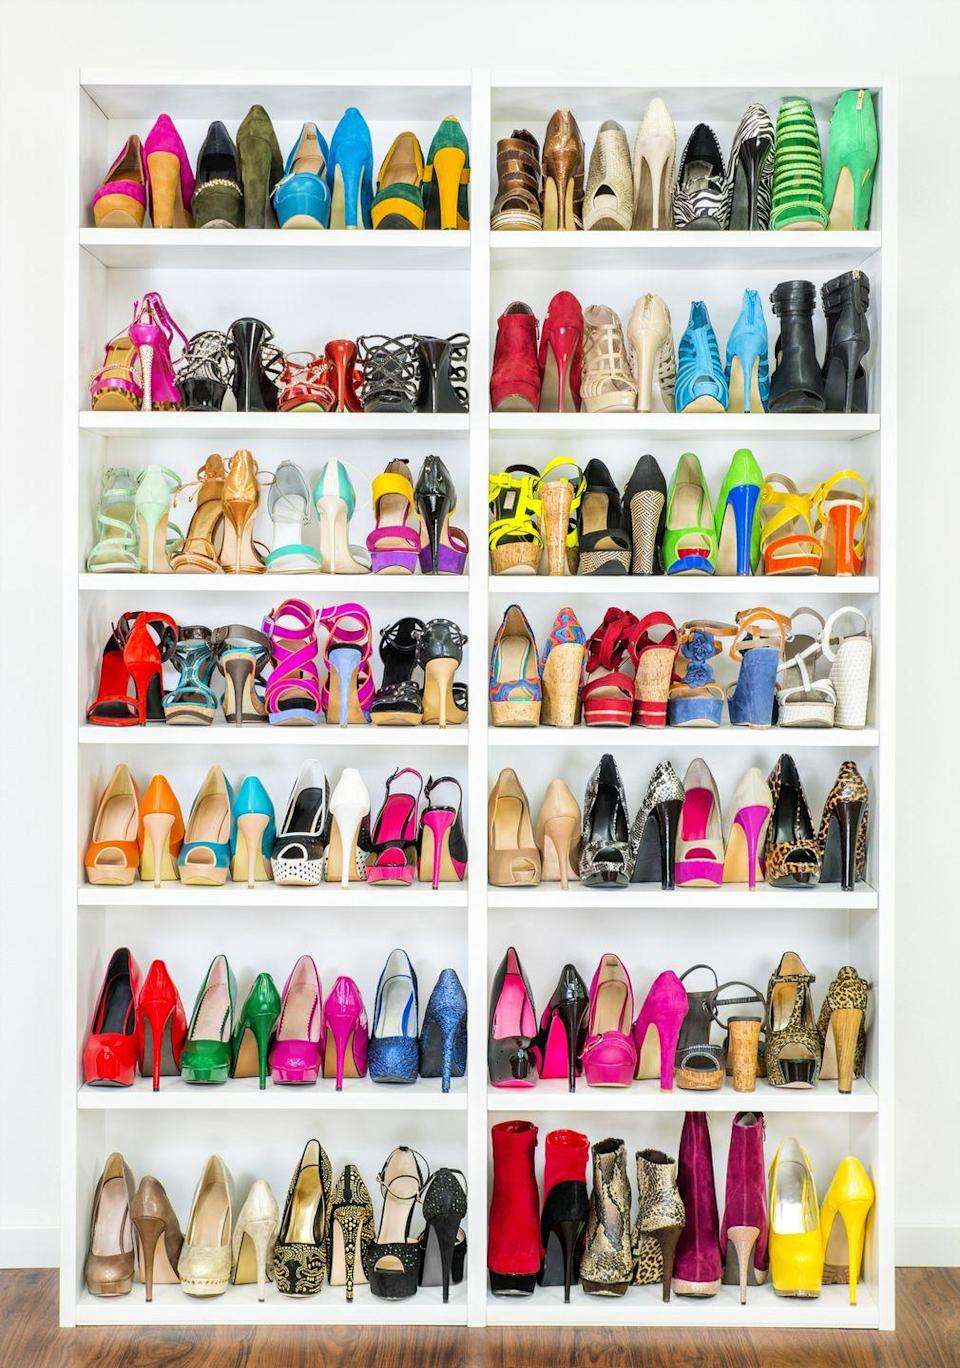 <p>By organizing your shoes from heel to toe, you can maximize space (a.k.a. room for more shoes!), giving you a quick survey of color, toe style, and heel height to help speed up getting dressed.</p>